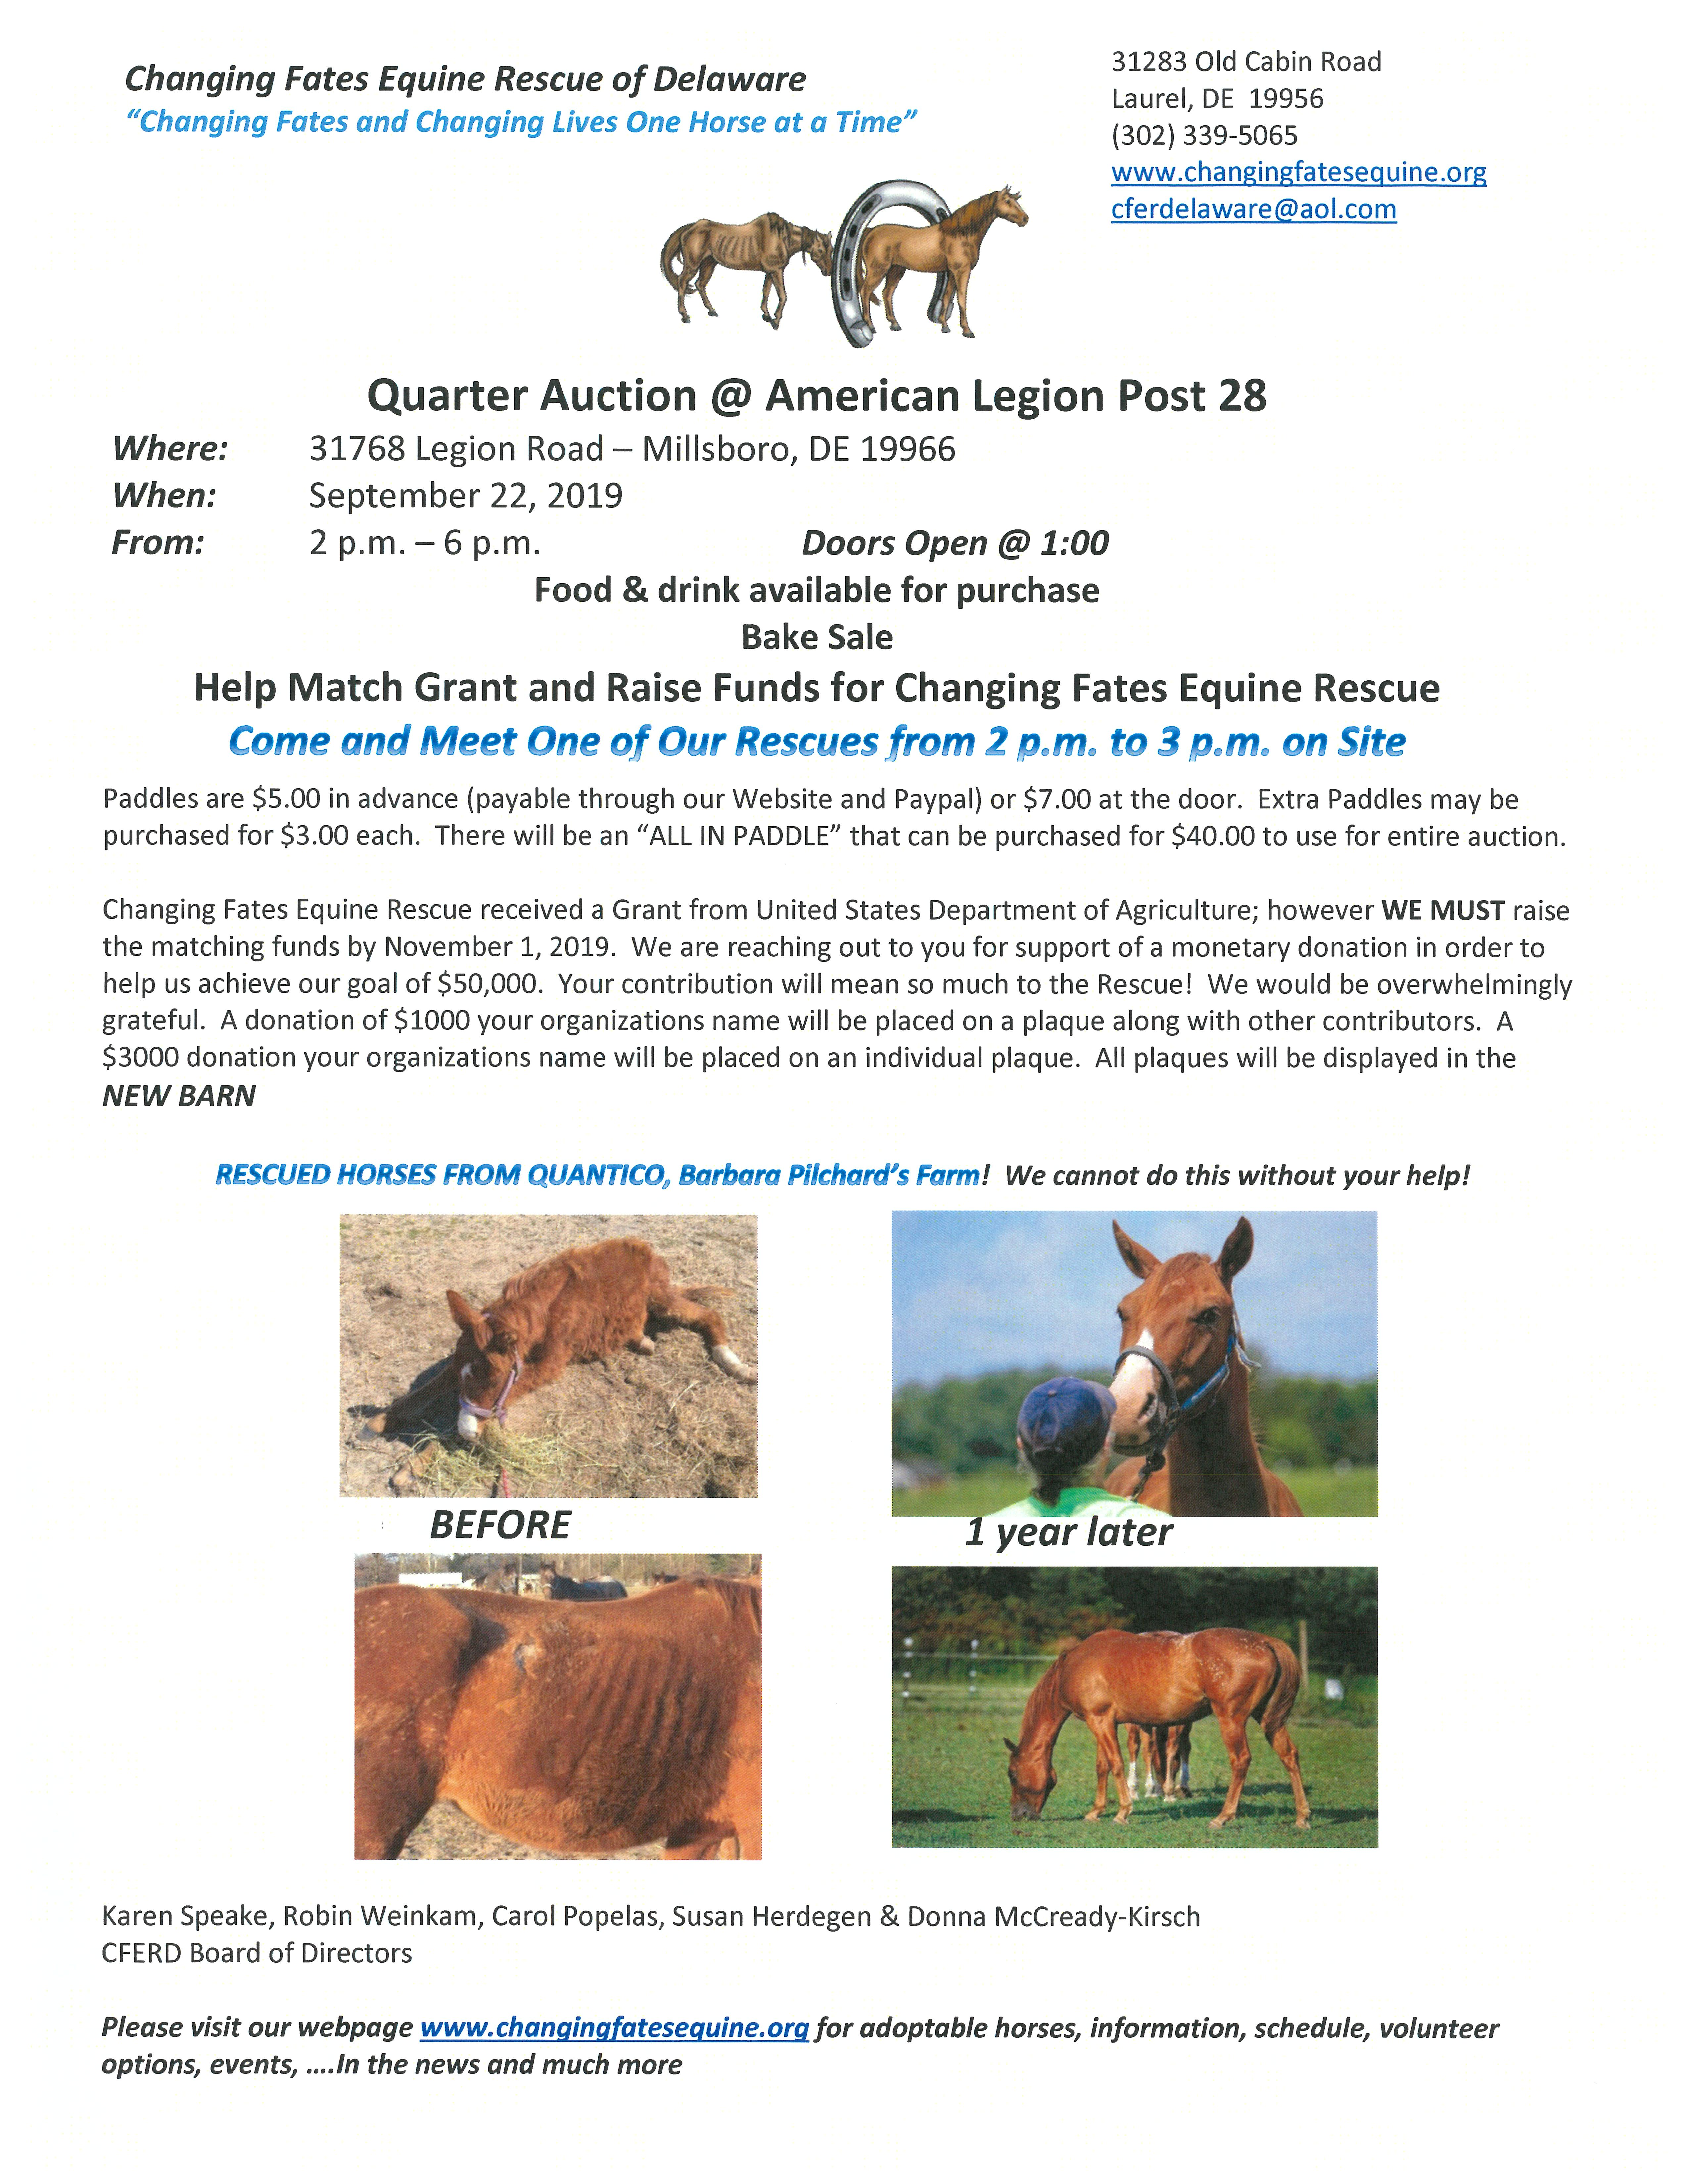 Changing Fates Equine Rescue of Delaware/>